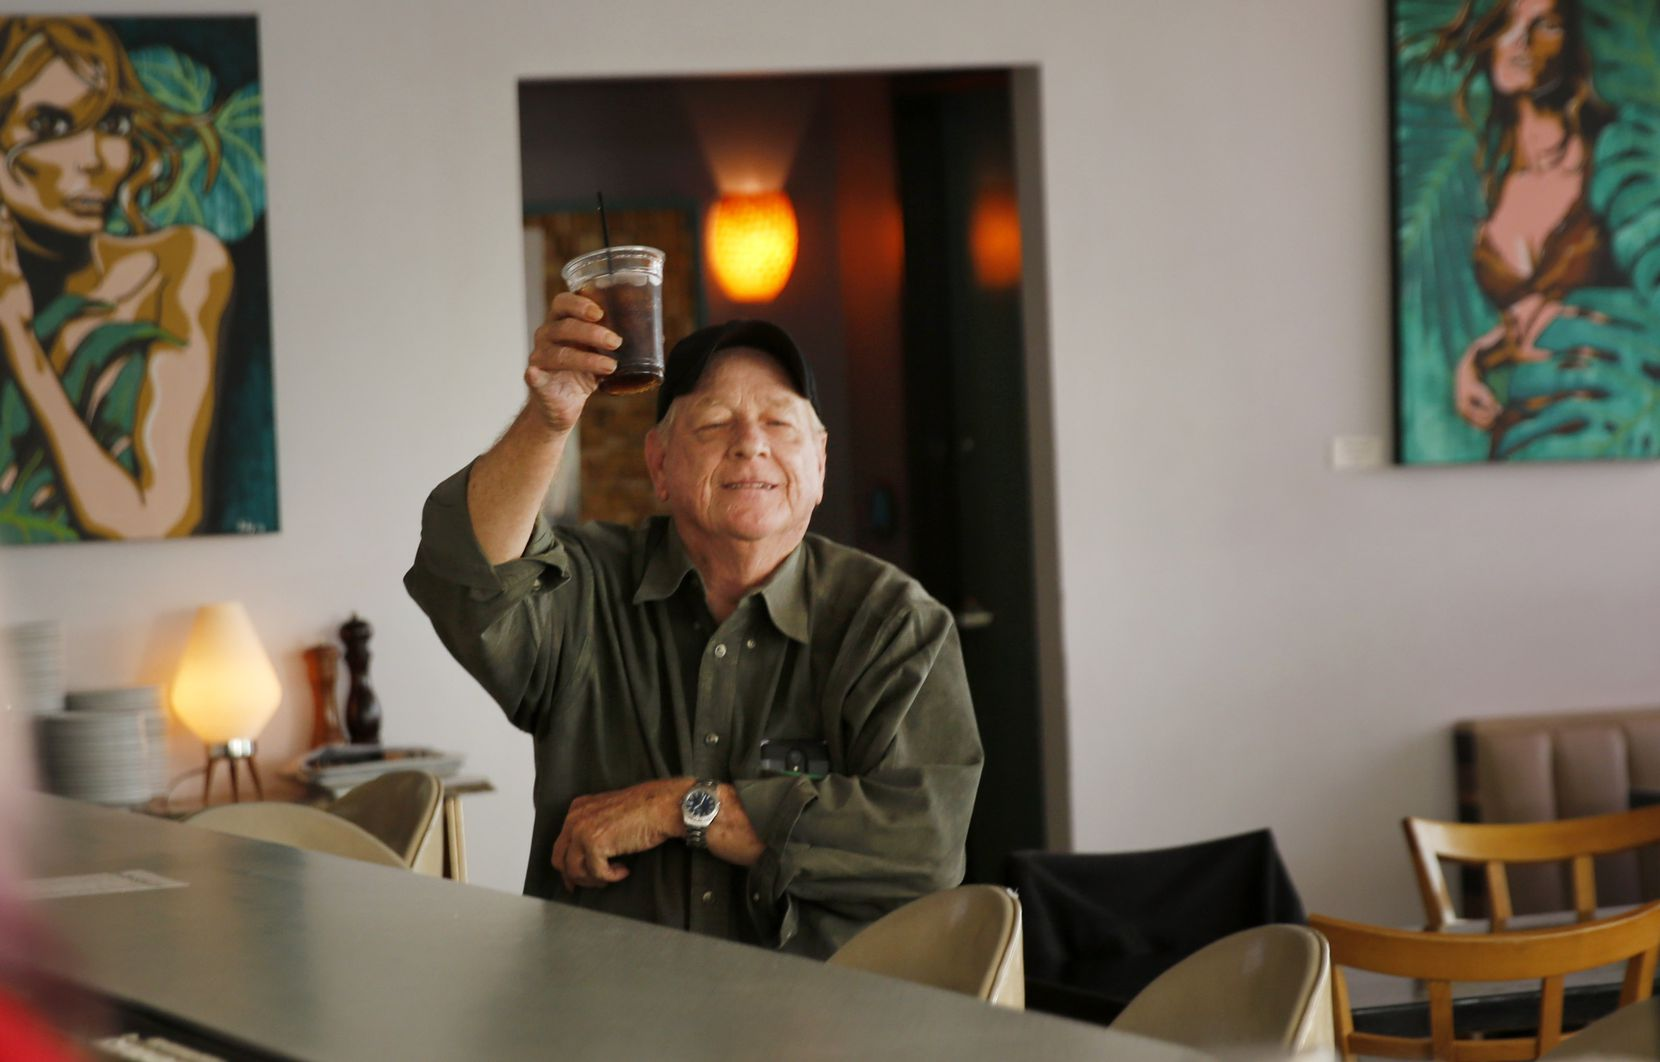 Longtime patron Jim Harper raised his glass as a nod to the final day of hanging out in Nova, a popular Oak Cliff neighborhood restaurant and bar that's had to close for sit-down service because of the coronavirus, on Saturday, March 21, 2020. (Tom Fox/The Dallas Morning News)